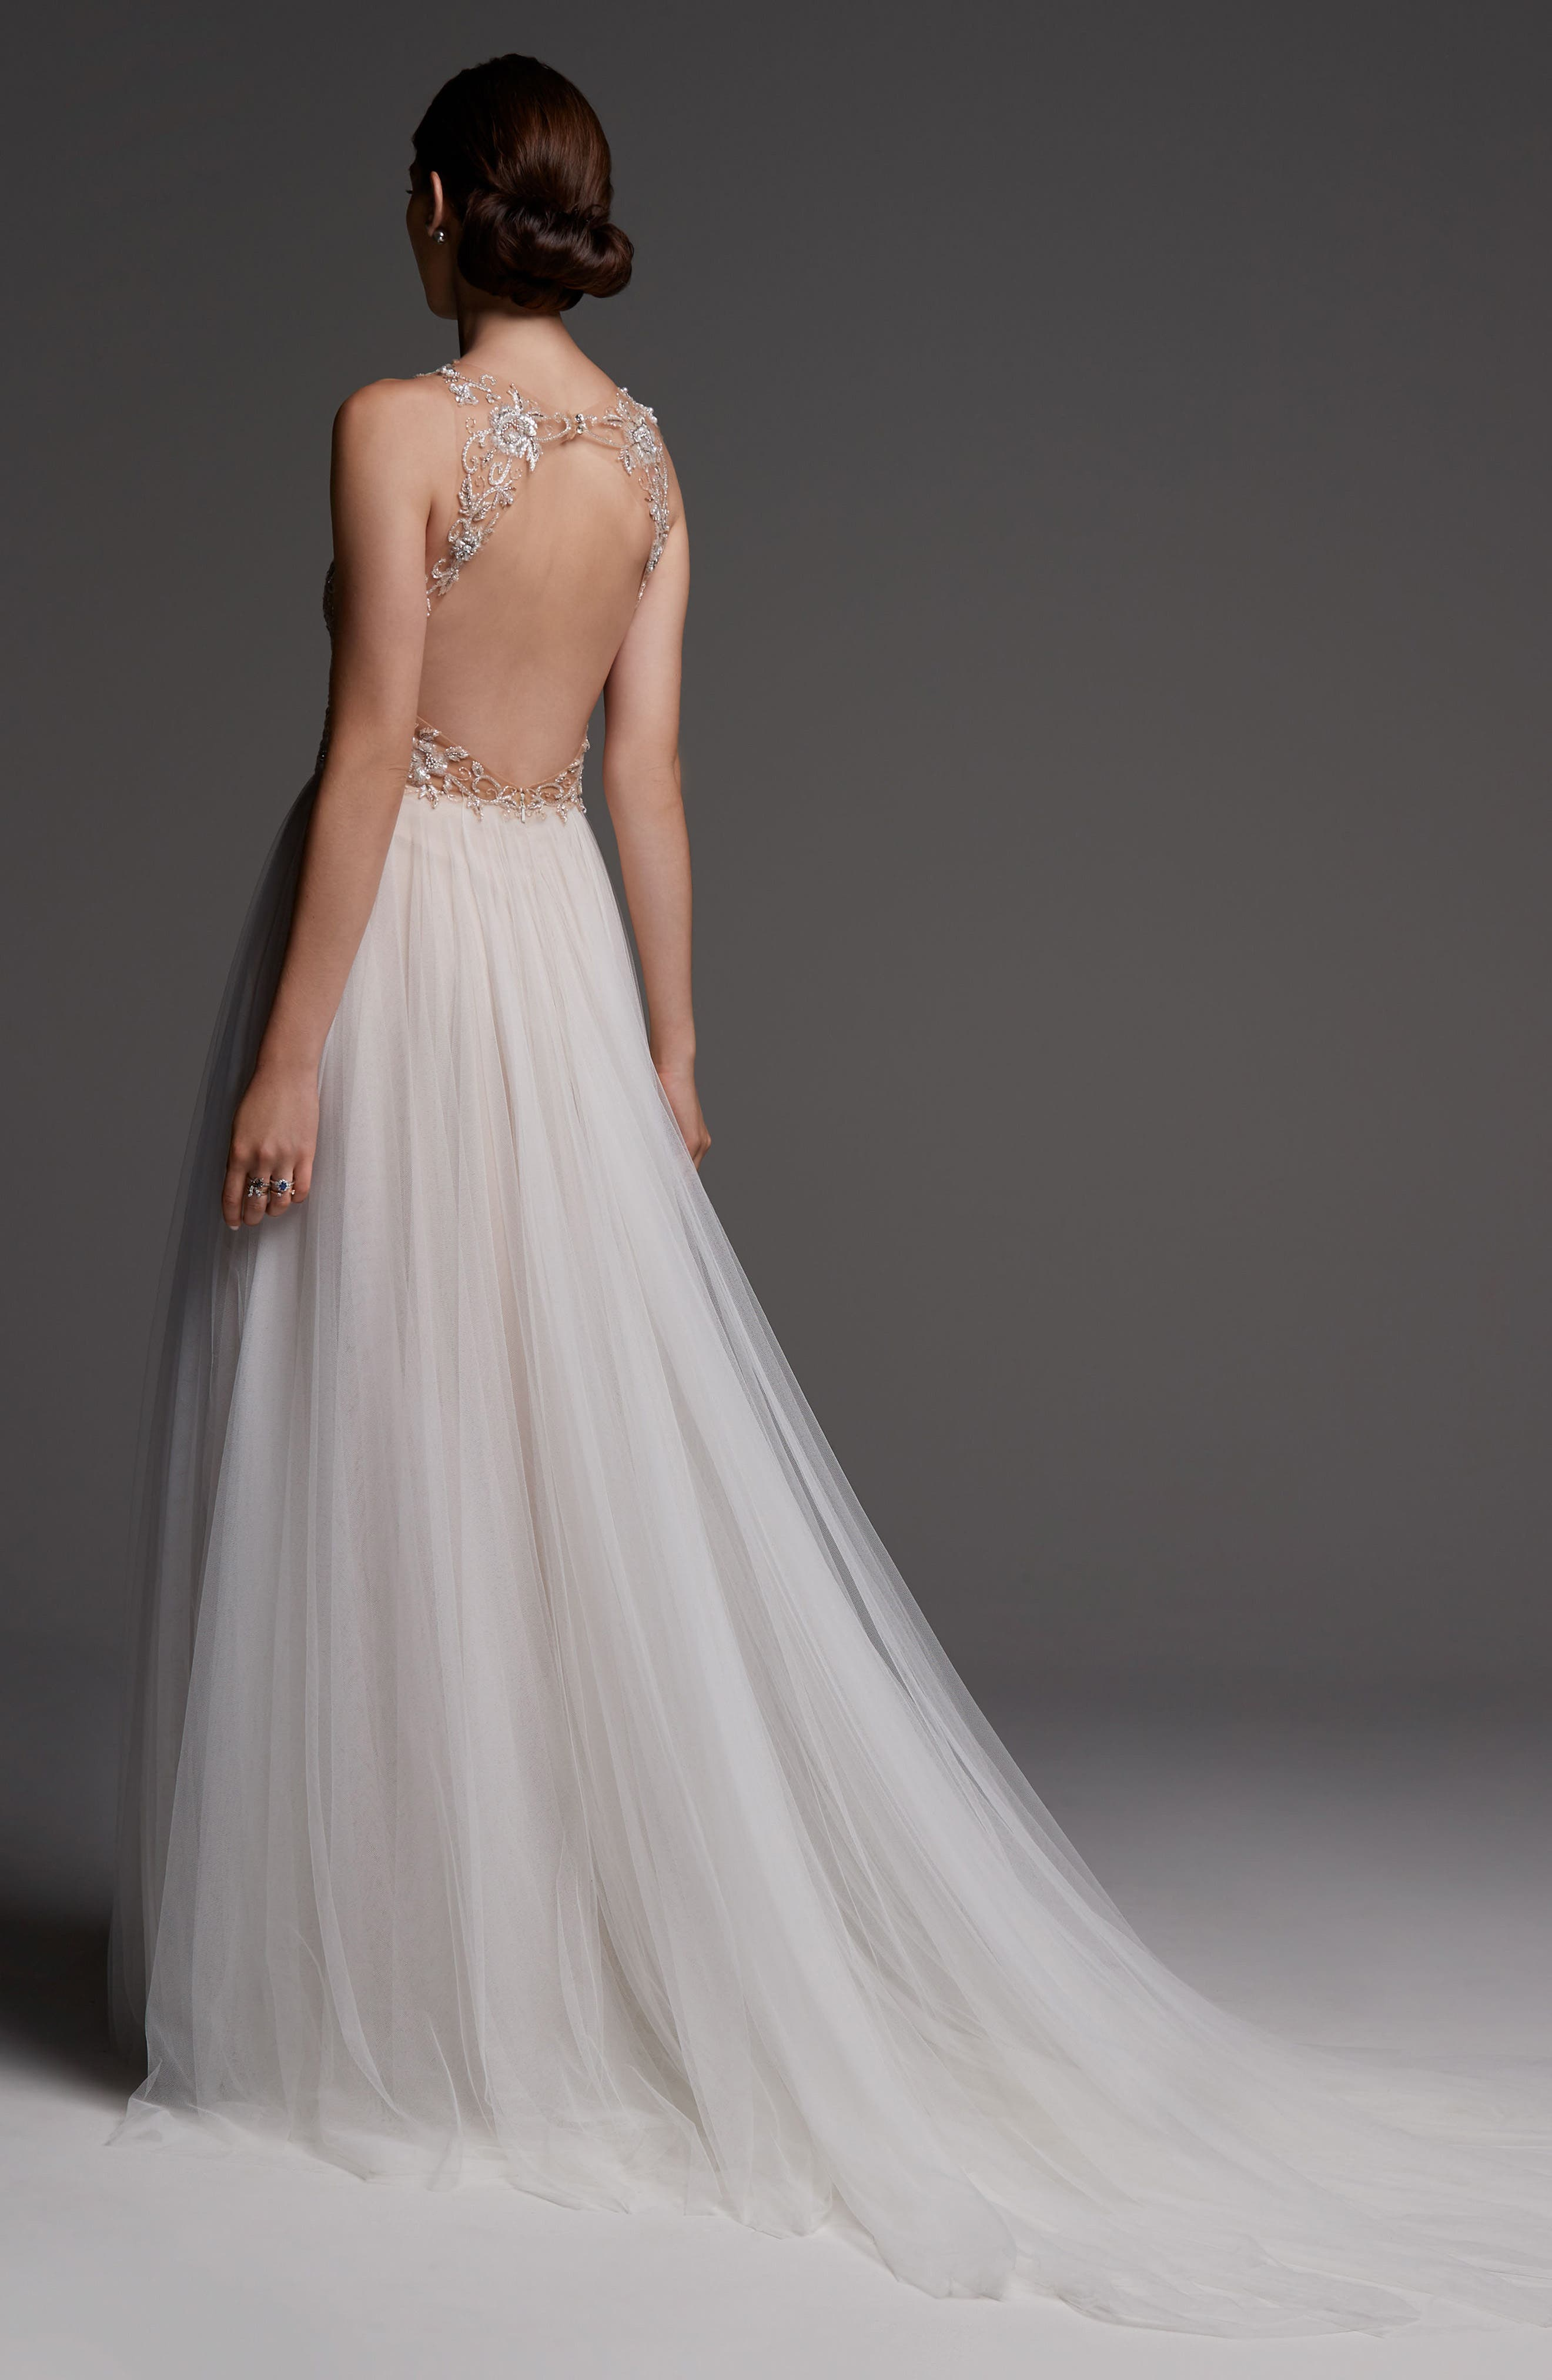 Wessex Beaded Open Back Gown,                             Alternate thumbnail 2, color,                             NUDE/ BLUSH